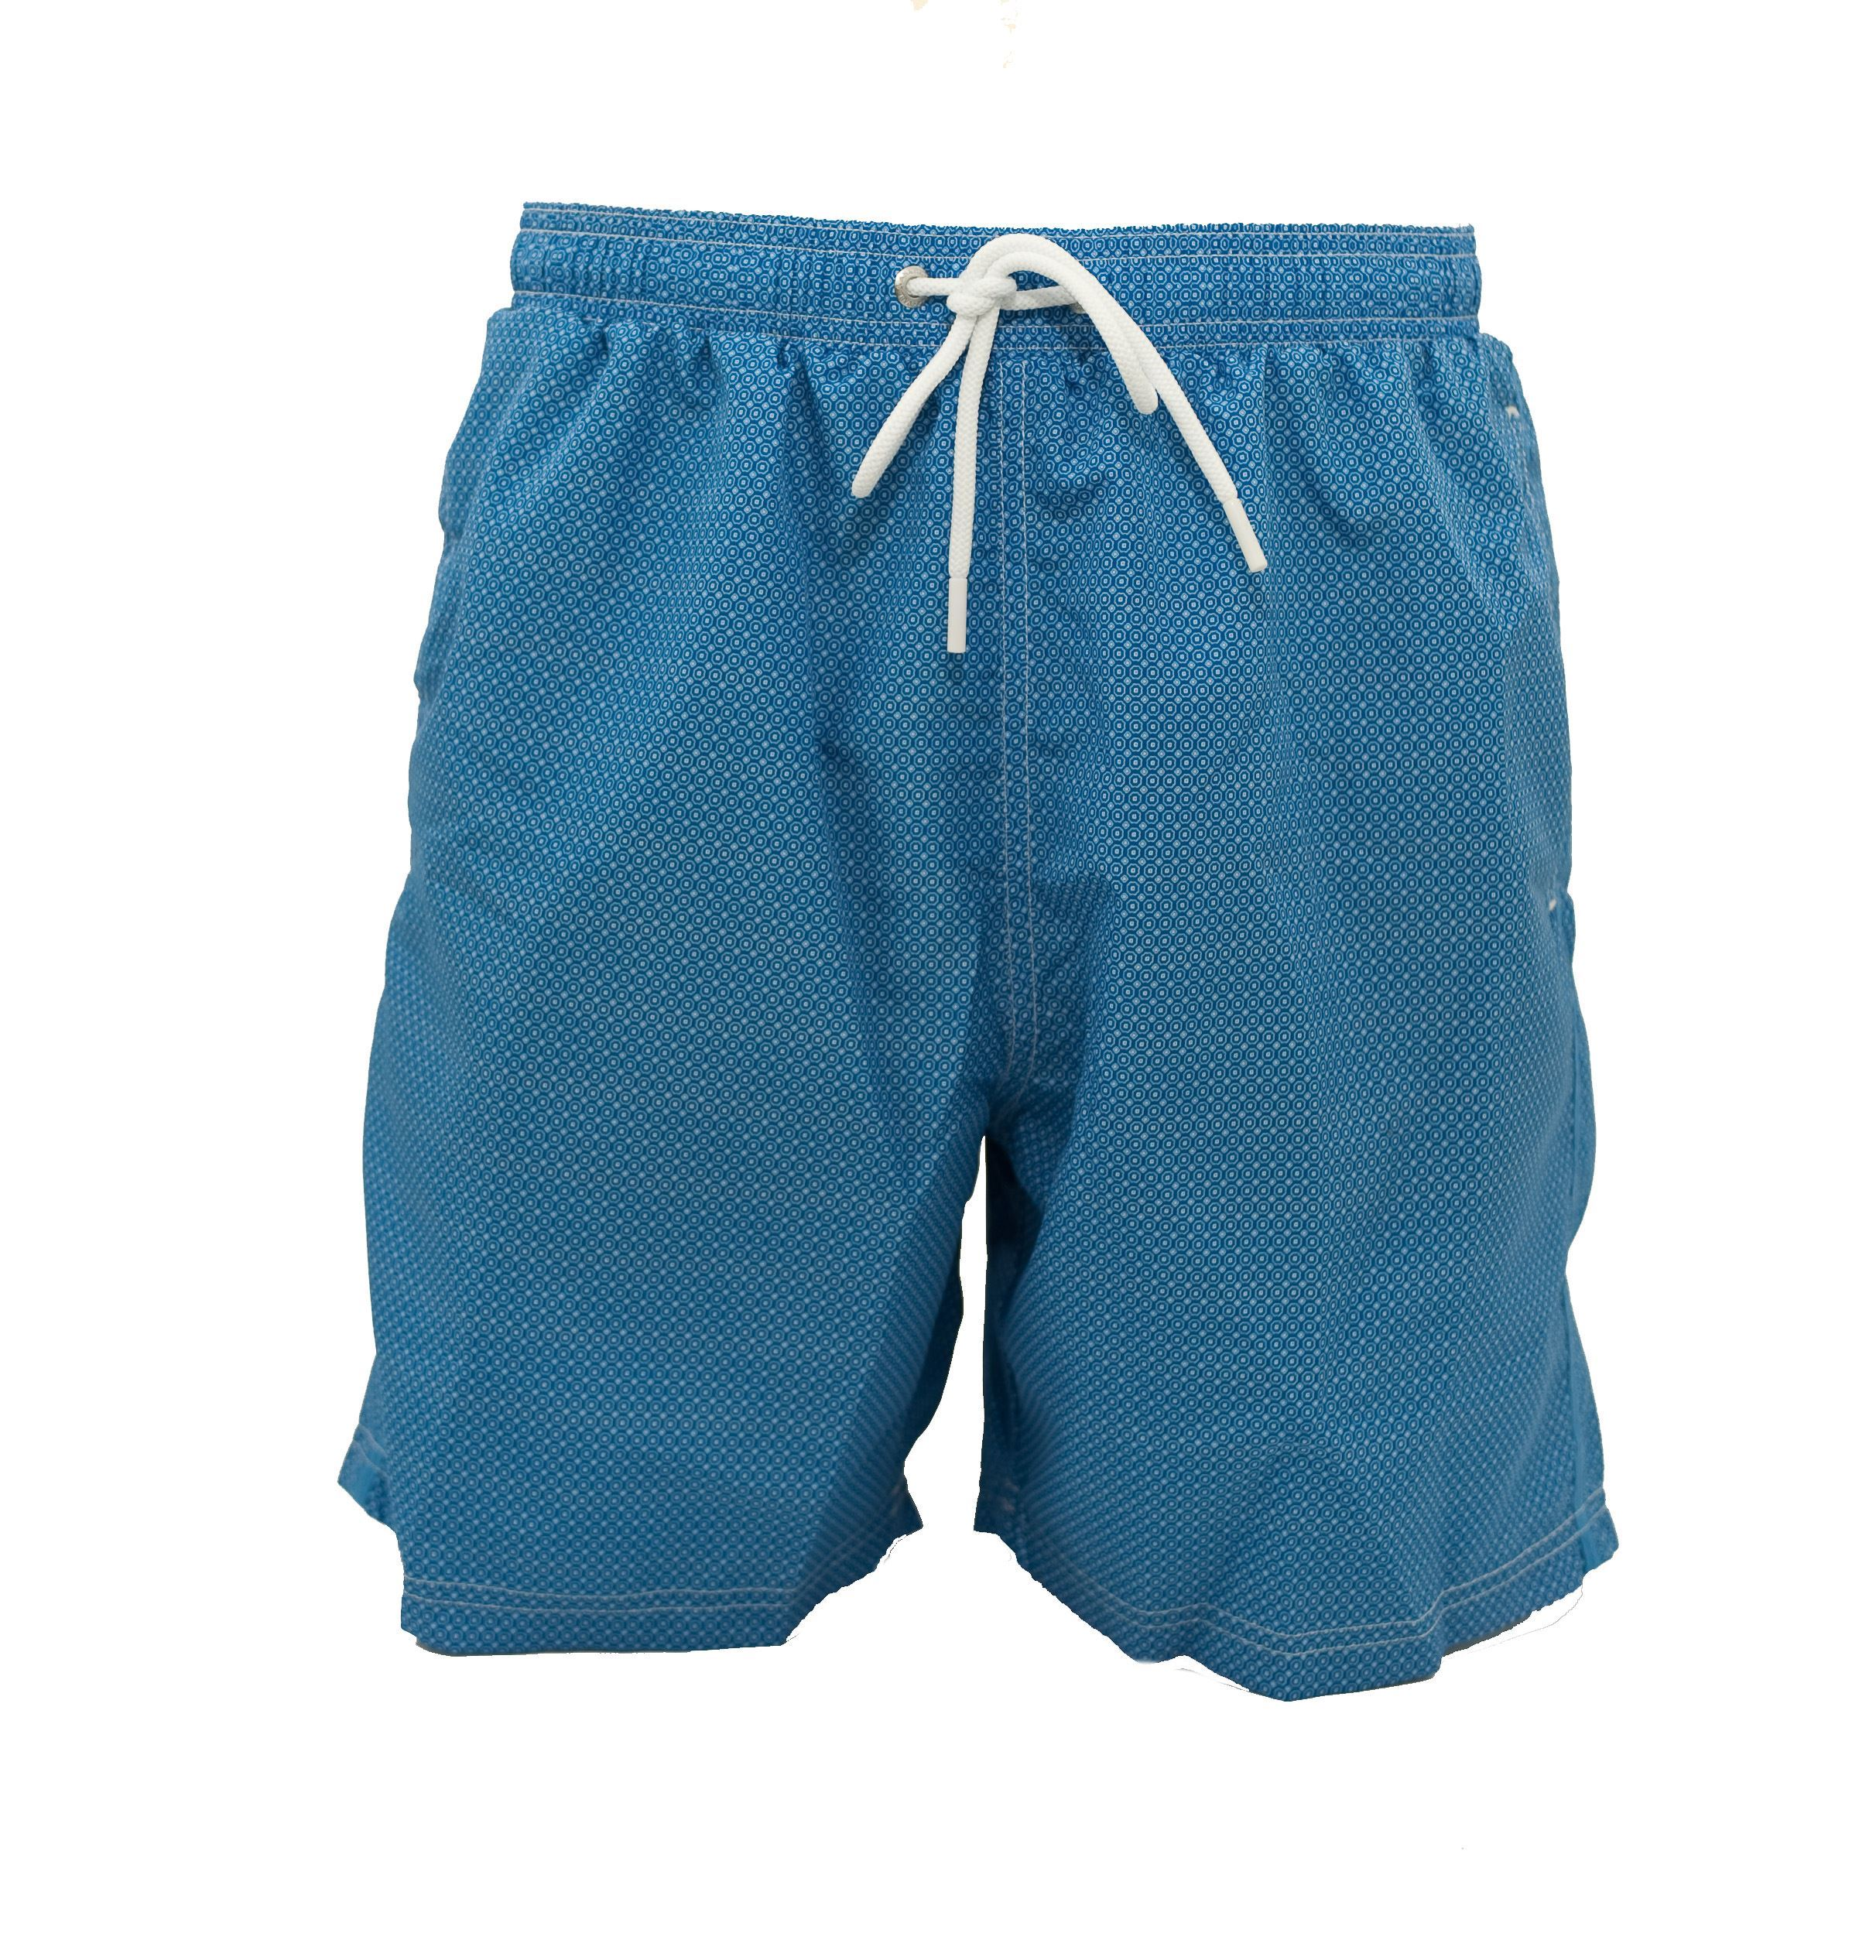 Picture of Bathing shorts